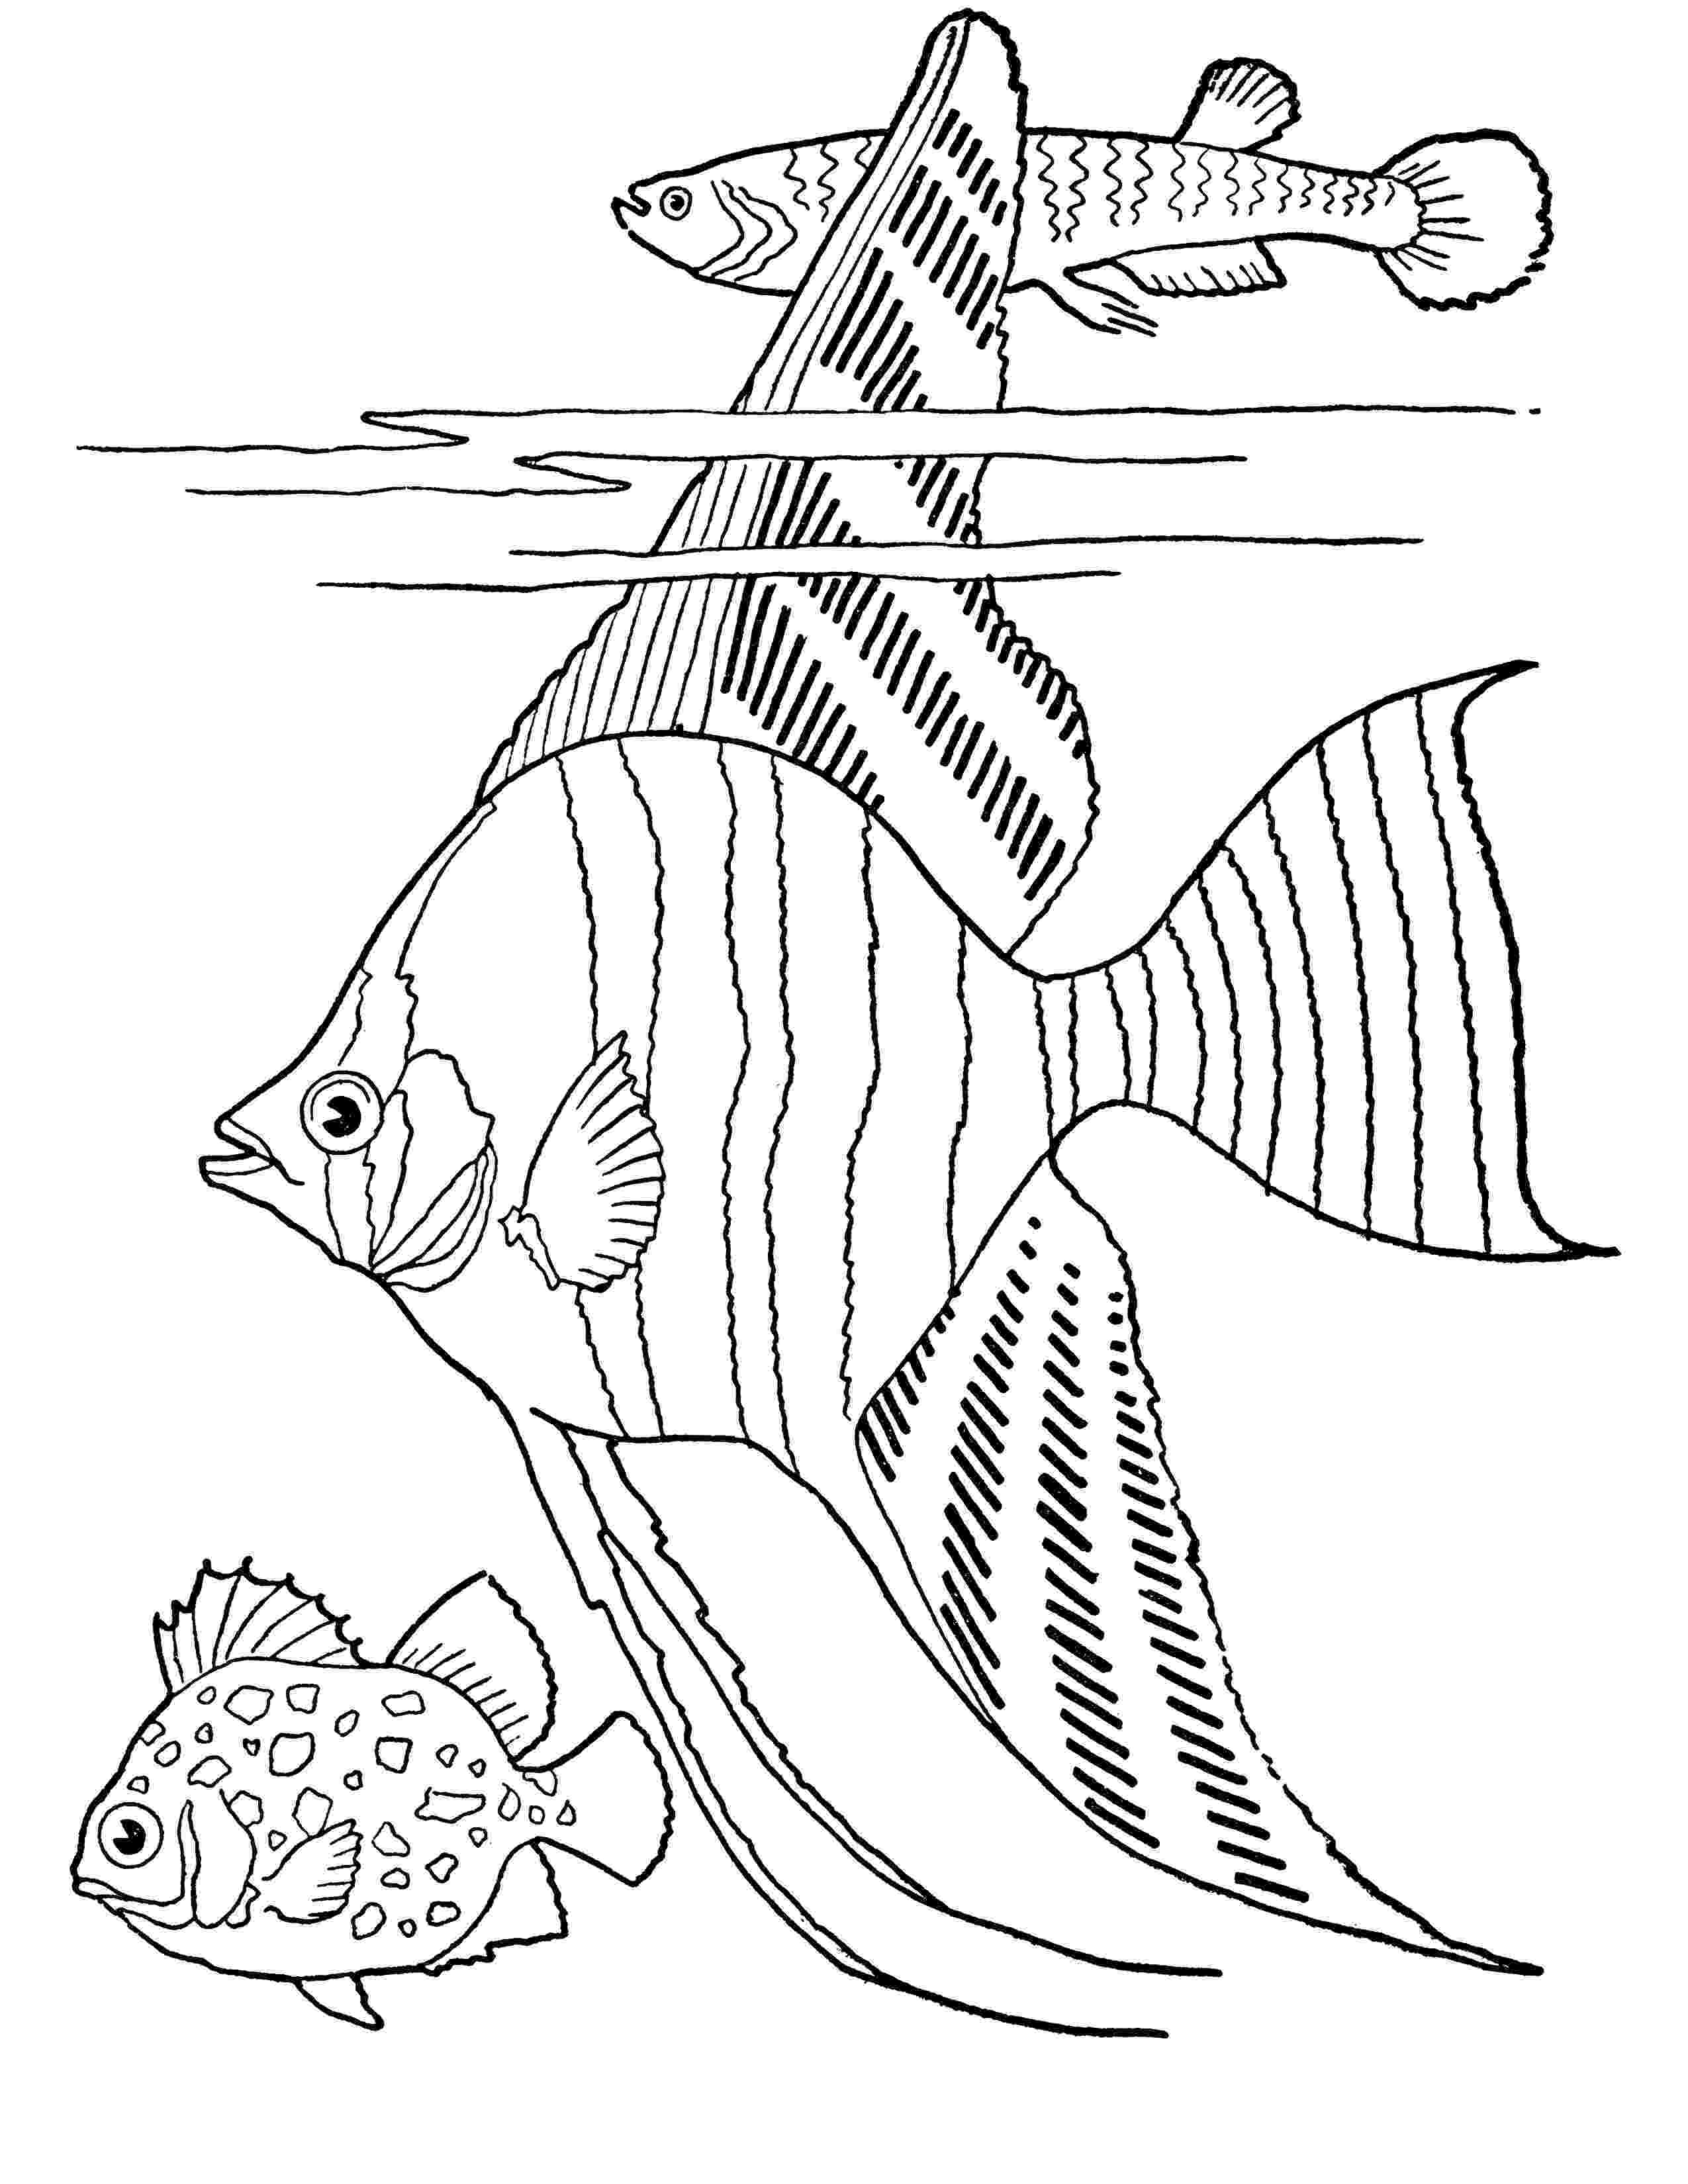 fishing coloring pages printable fish coloring pages getcoloringpagescom fishing printable coloring pages